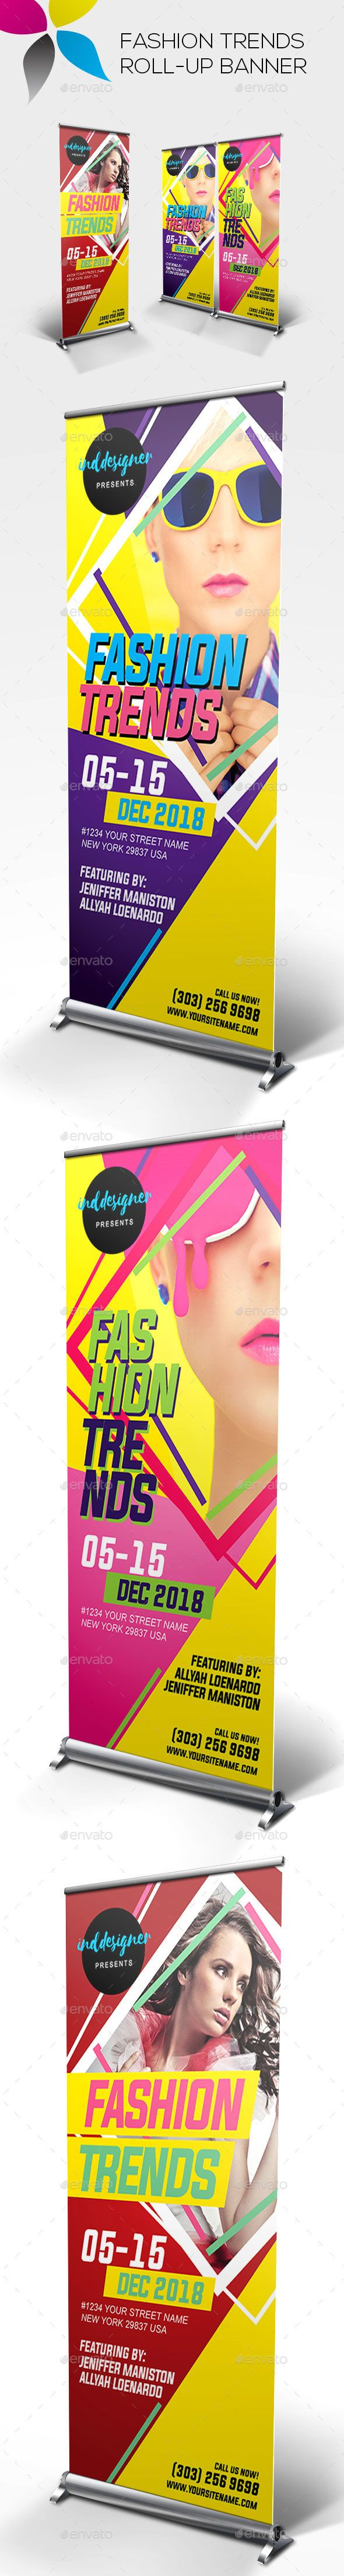 Fashion Trends Roll-up Banner Template PSD